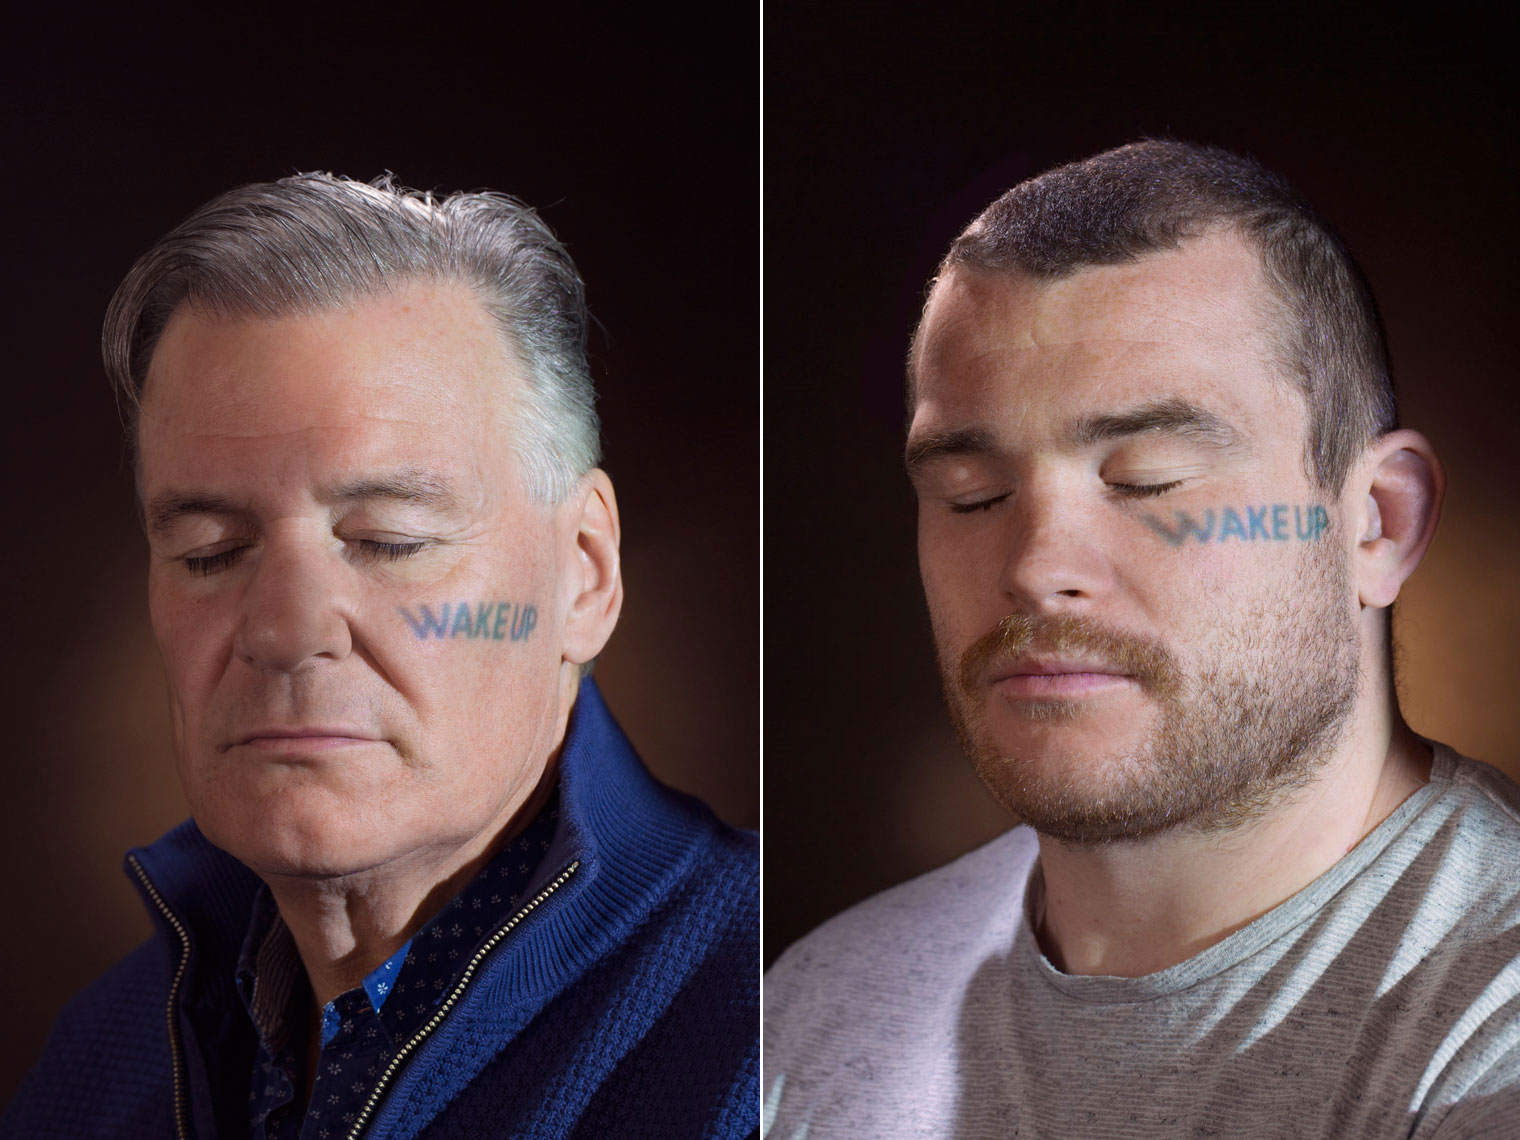 two men with wake up written on their face